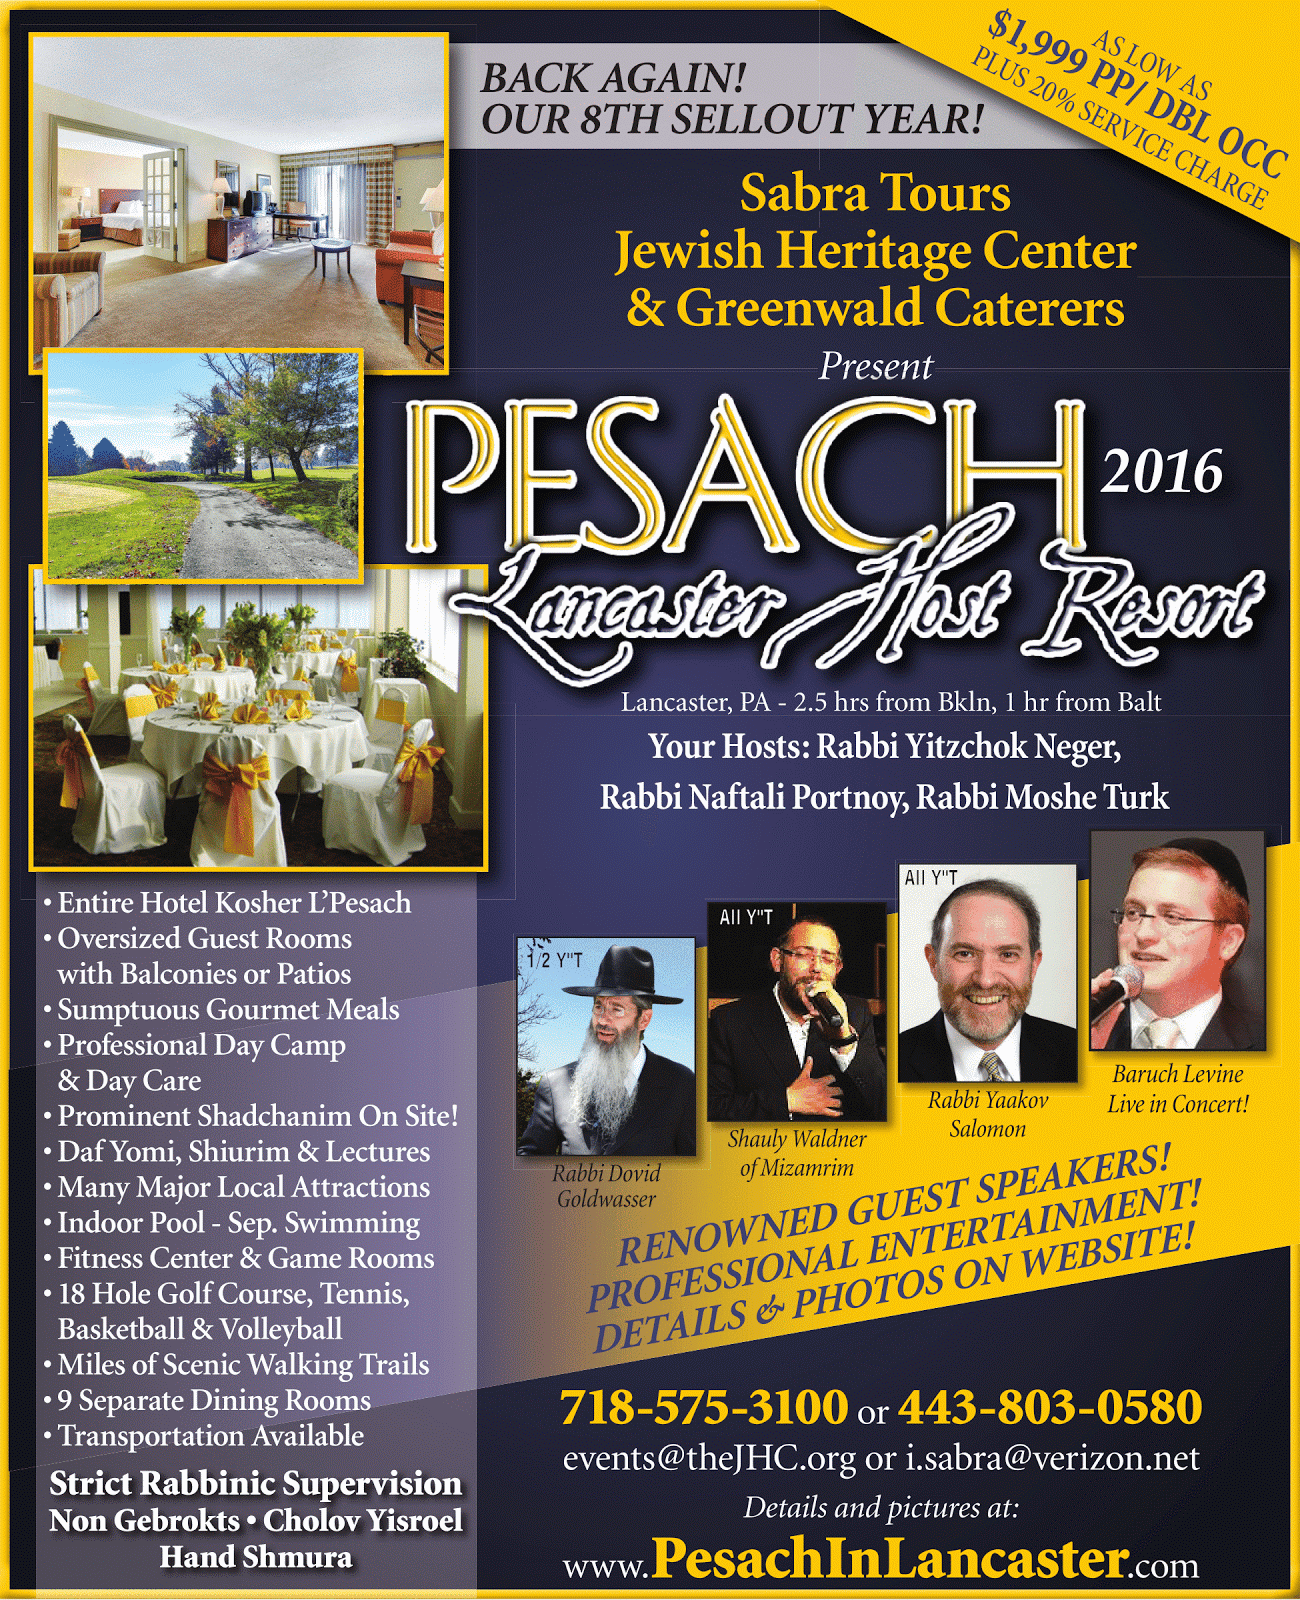 The Jewish Heritage Center & Greenwald Caterers of Lakewood